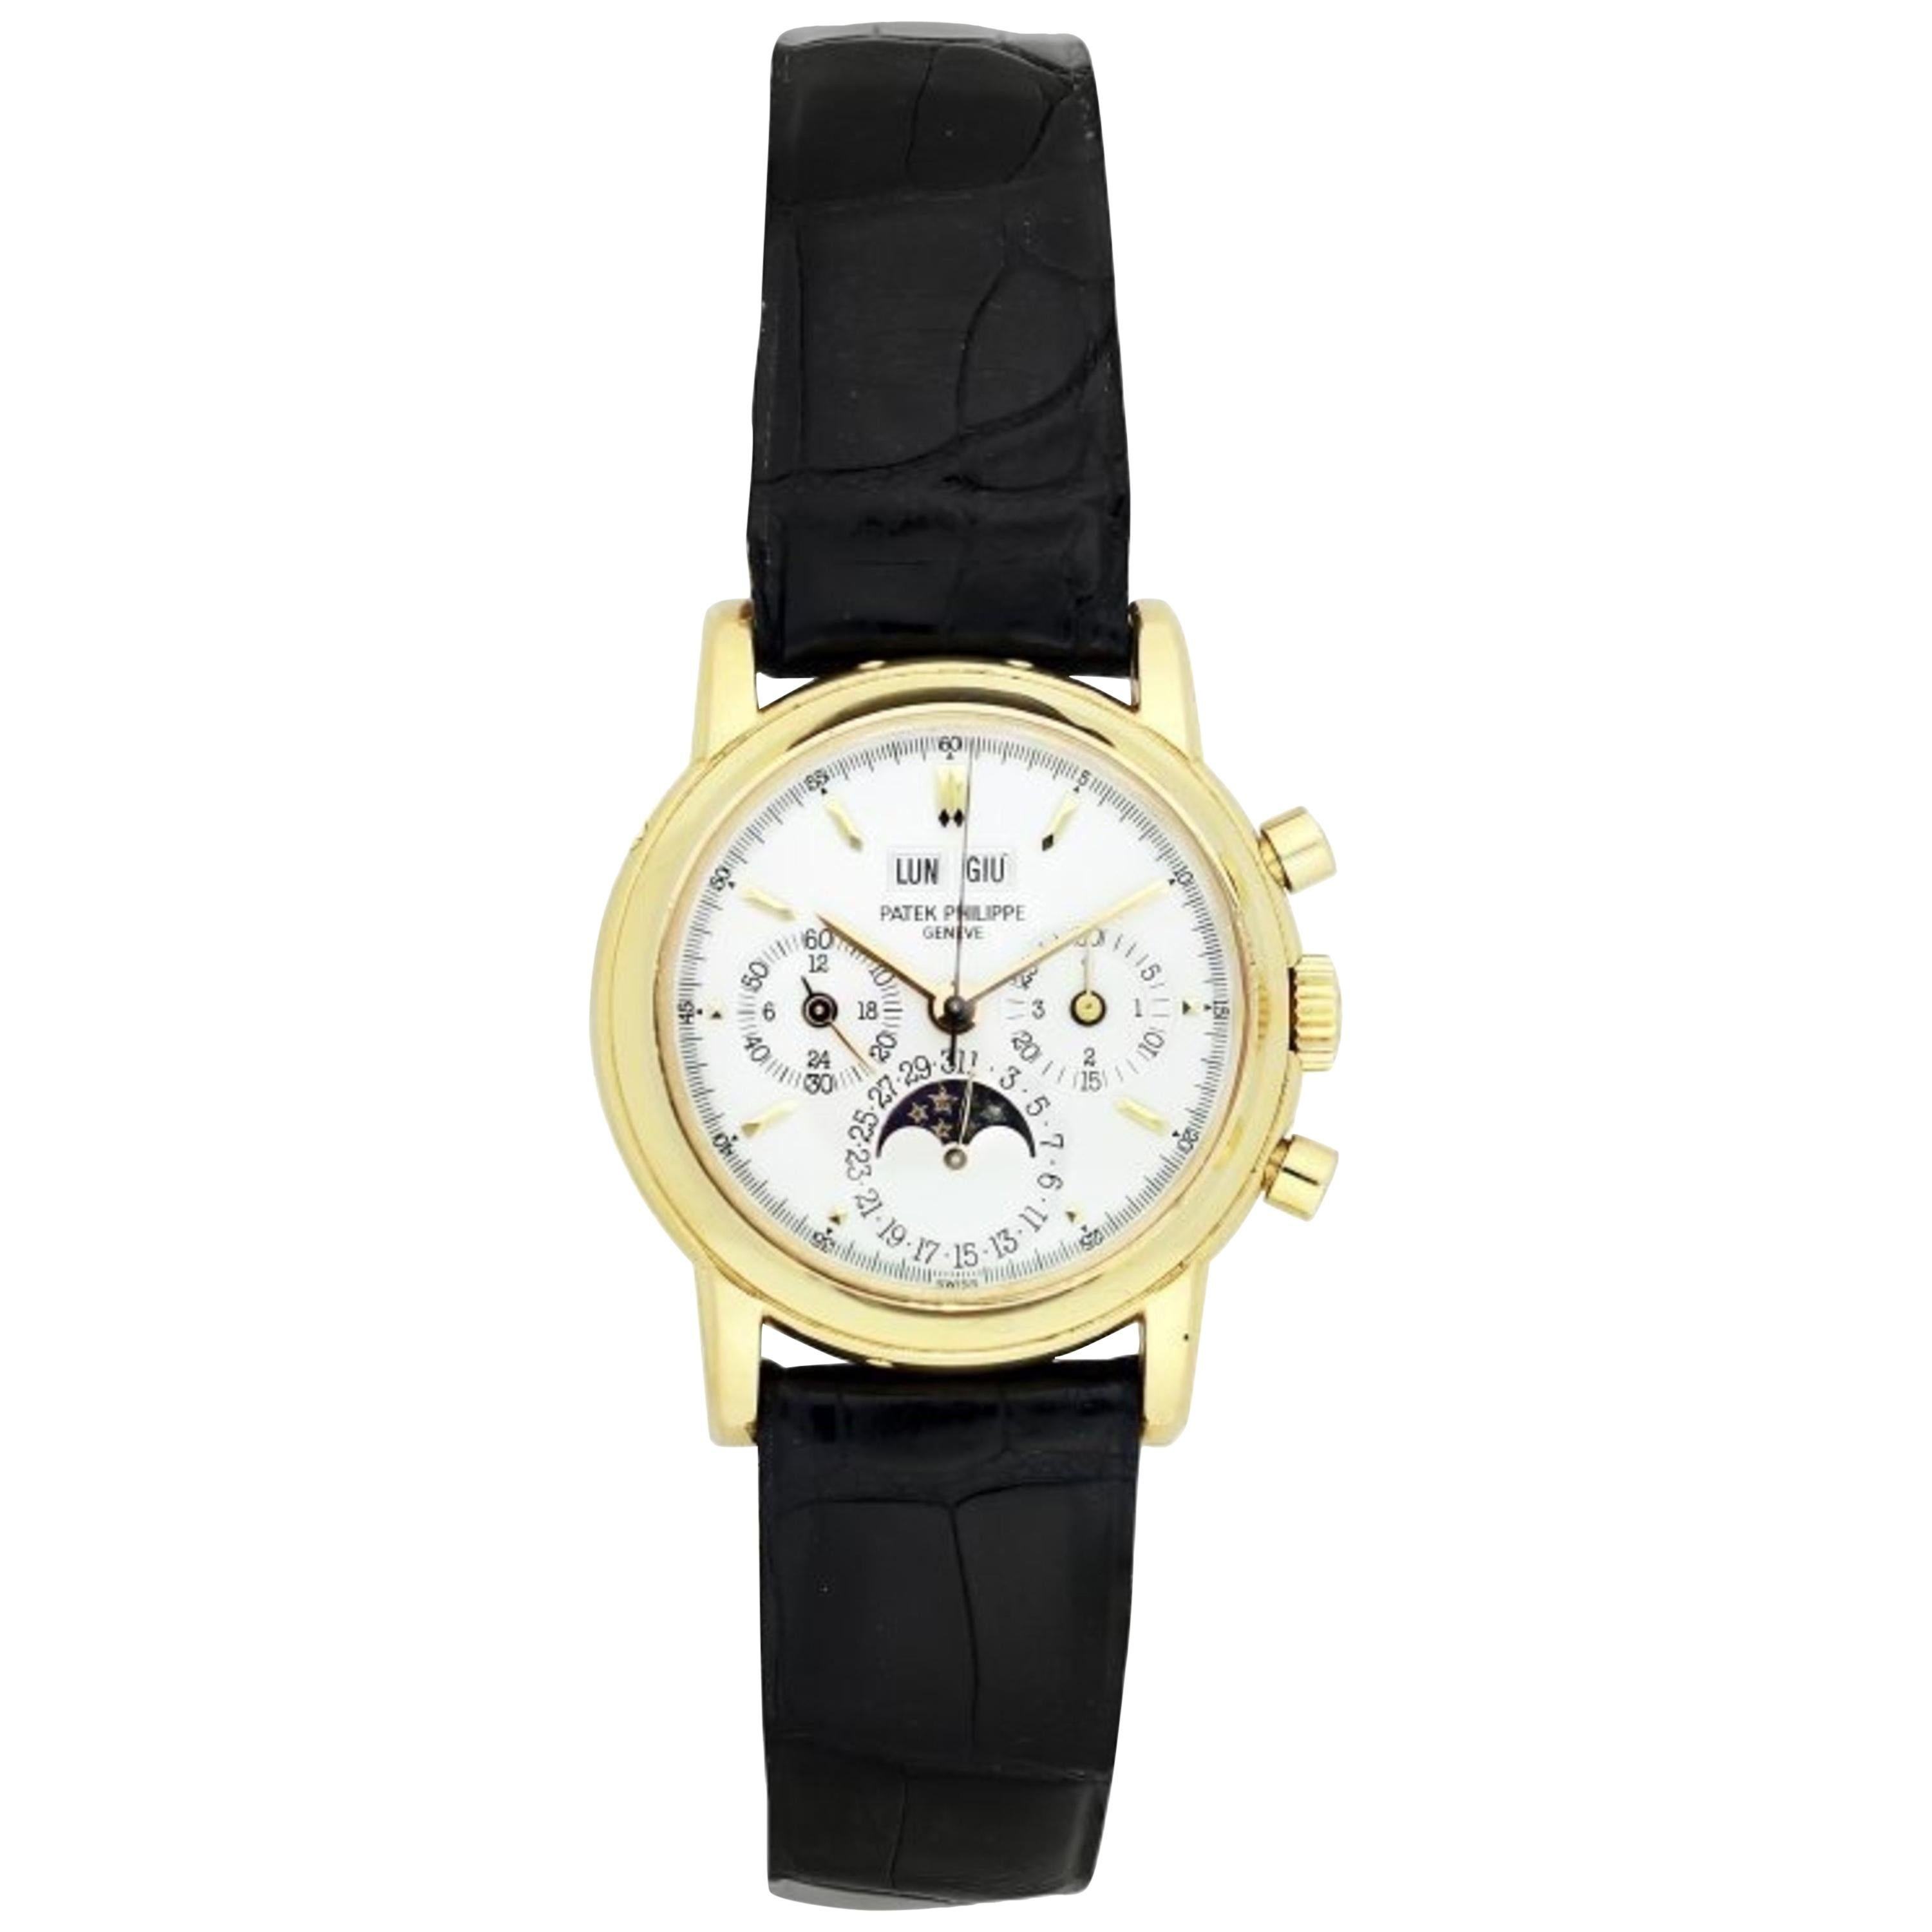 Patek Philippe Fine Yellow Gold Perpetual Calendar Chronograph with Moon Phases